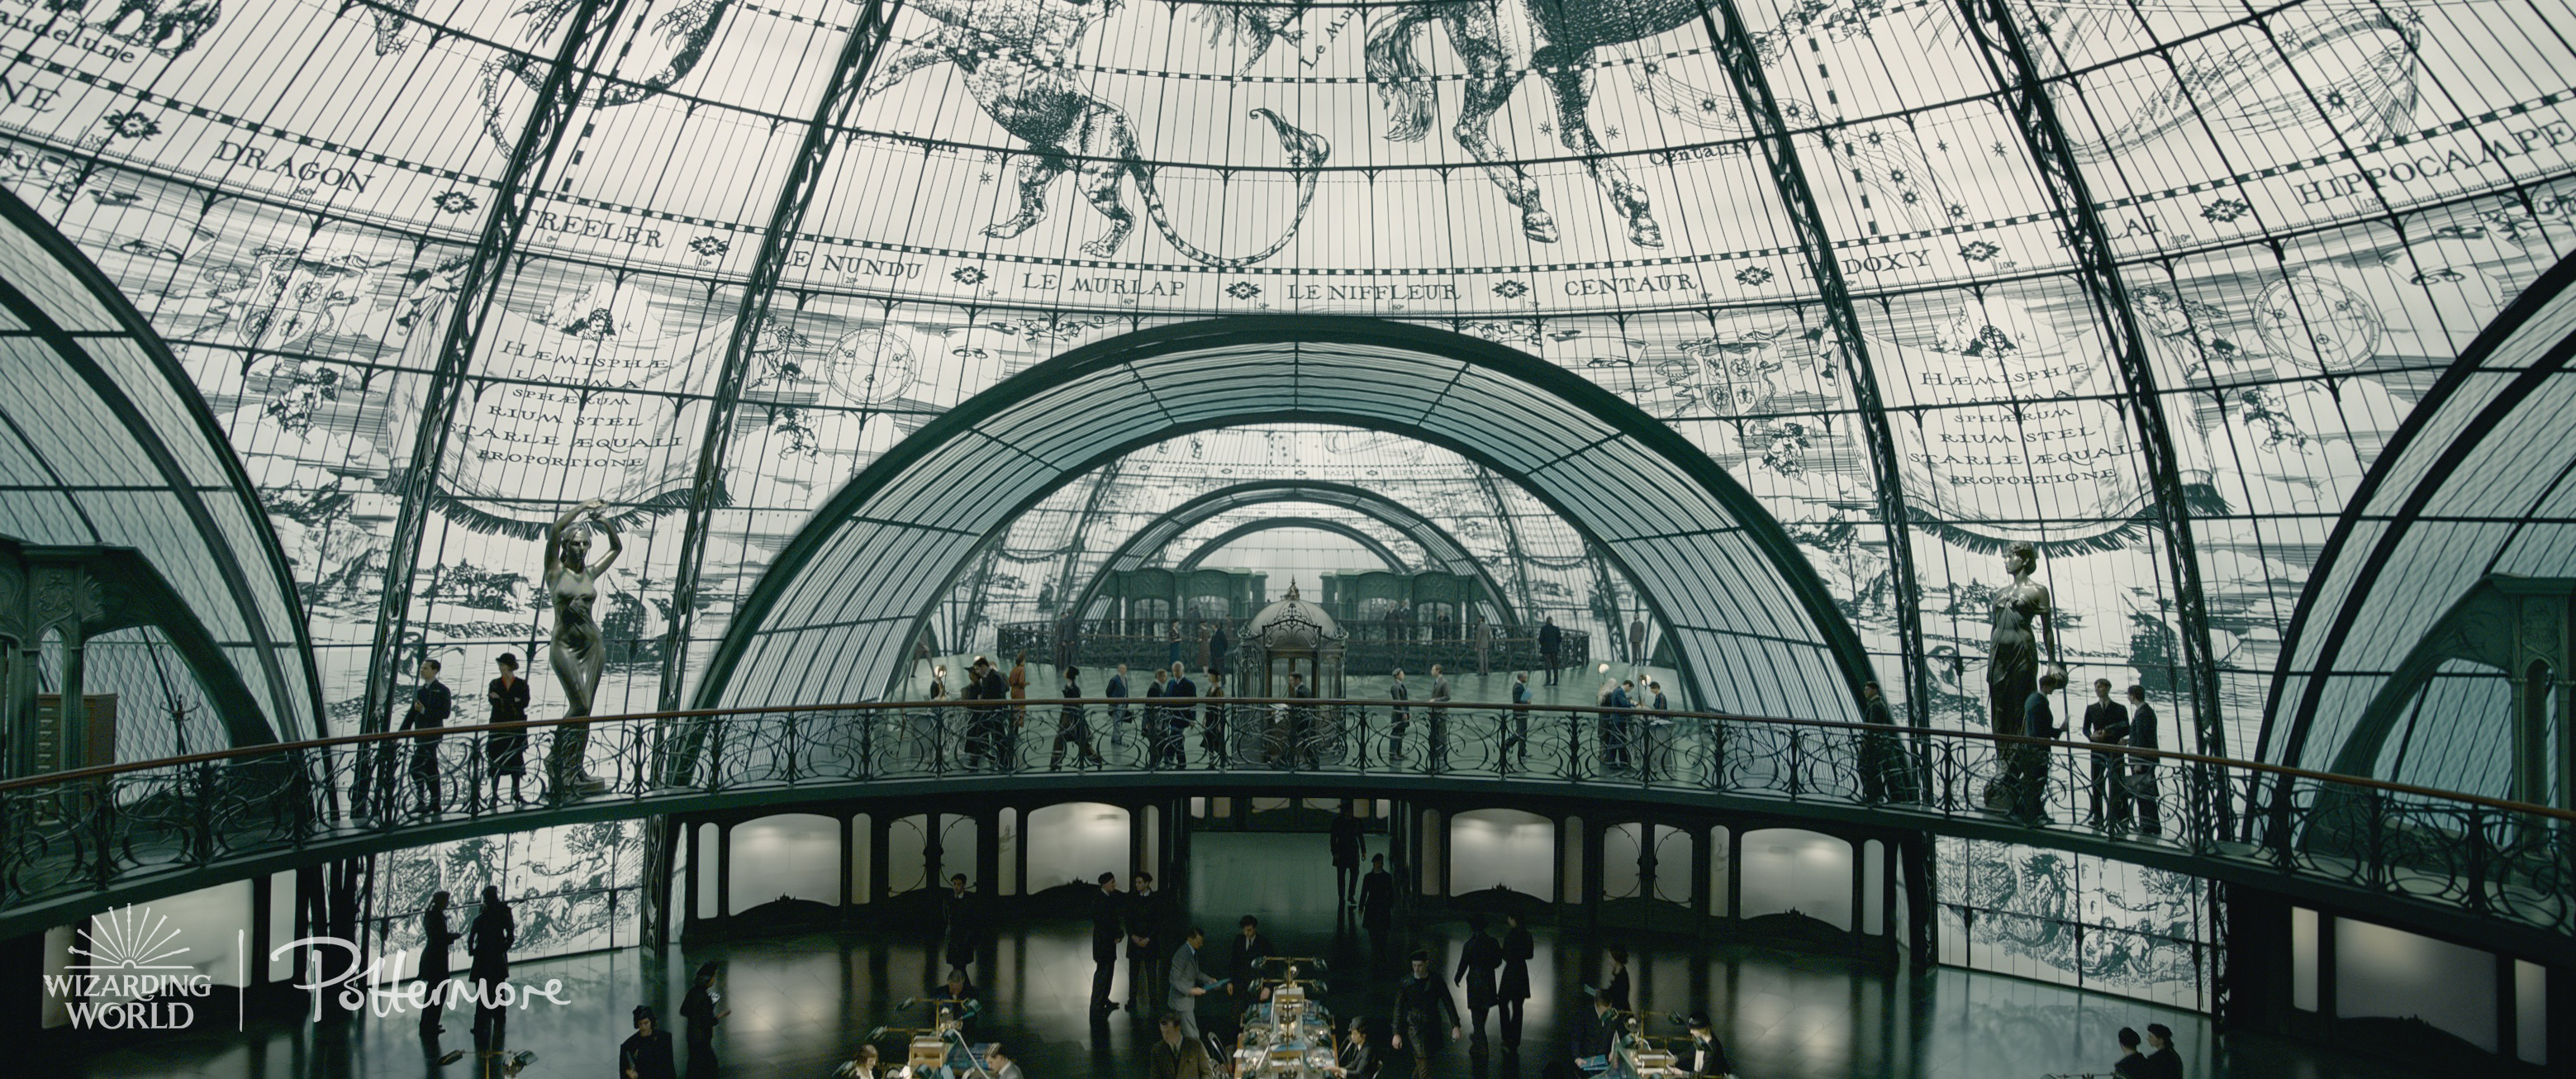 A French magical location from the Fantastic Beasts: Crimes of Grindelwald trailer